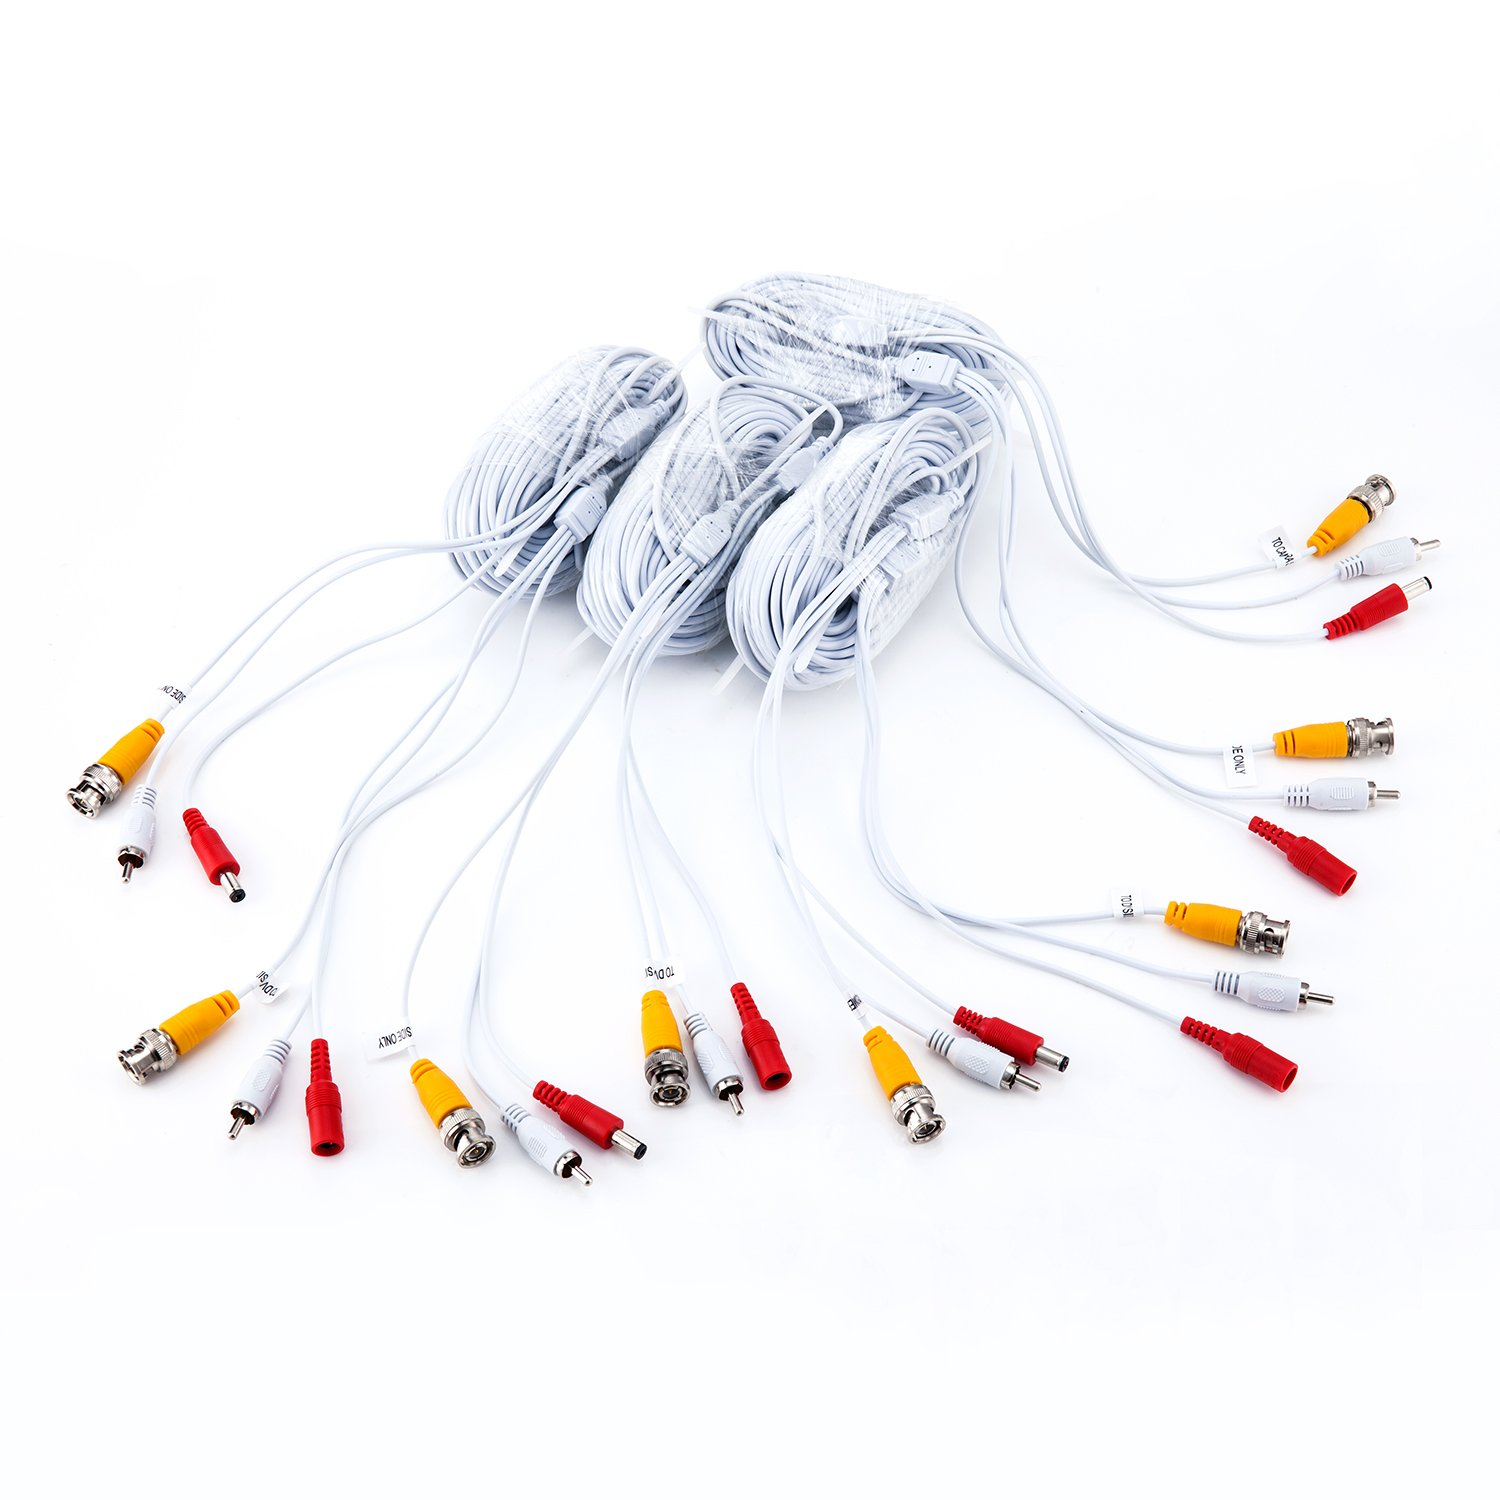 4 x 60ft security camera BNC cable,Video Audio with power for CCTV camera installation,Pre-Made All in one Siamese coaxial plug ready